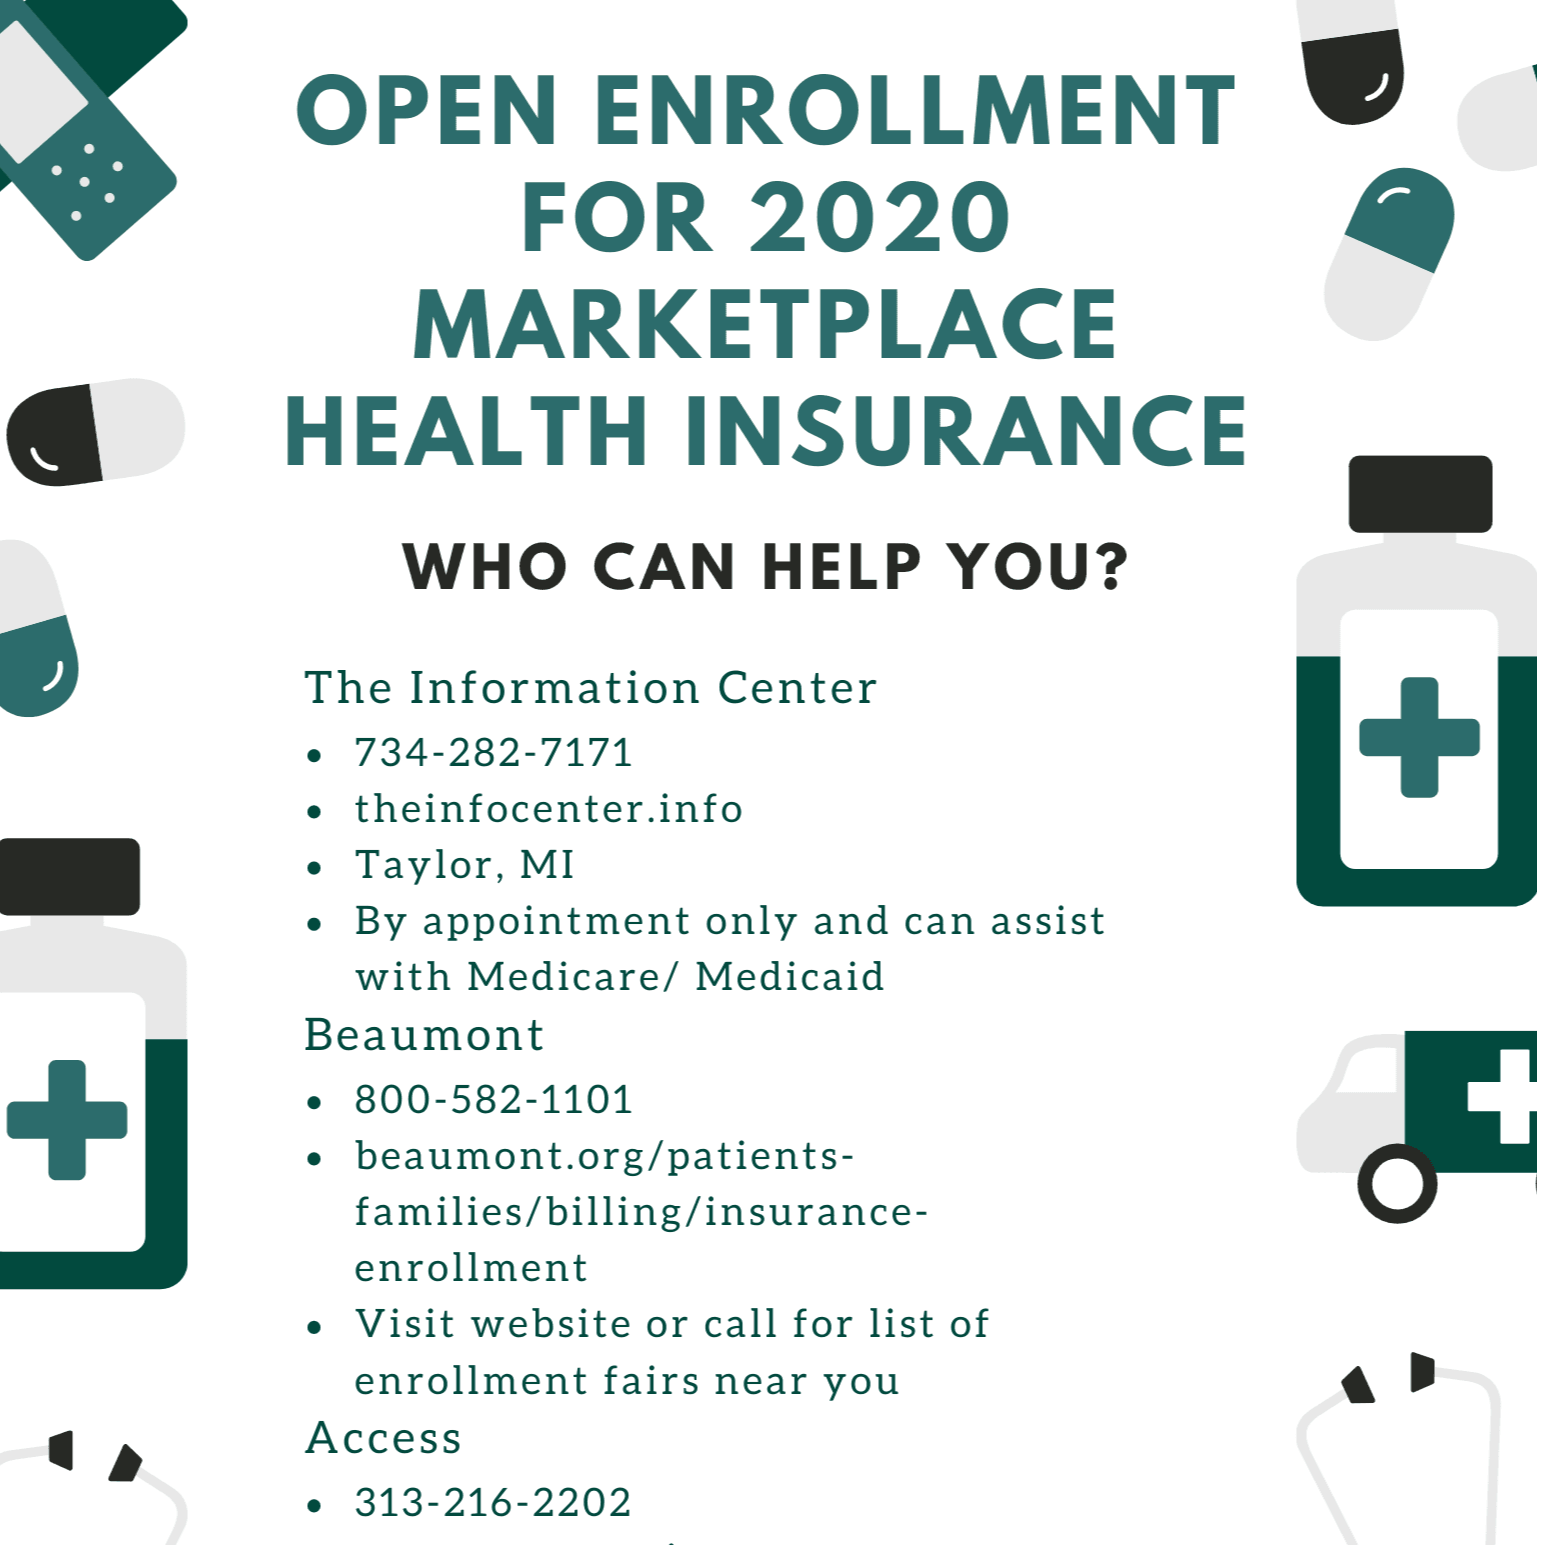 Open Enrollment for 2020 Marketplace Insurance (1)